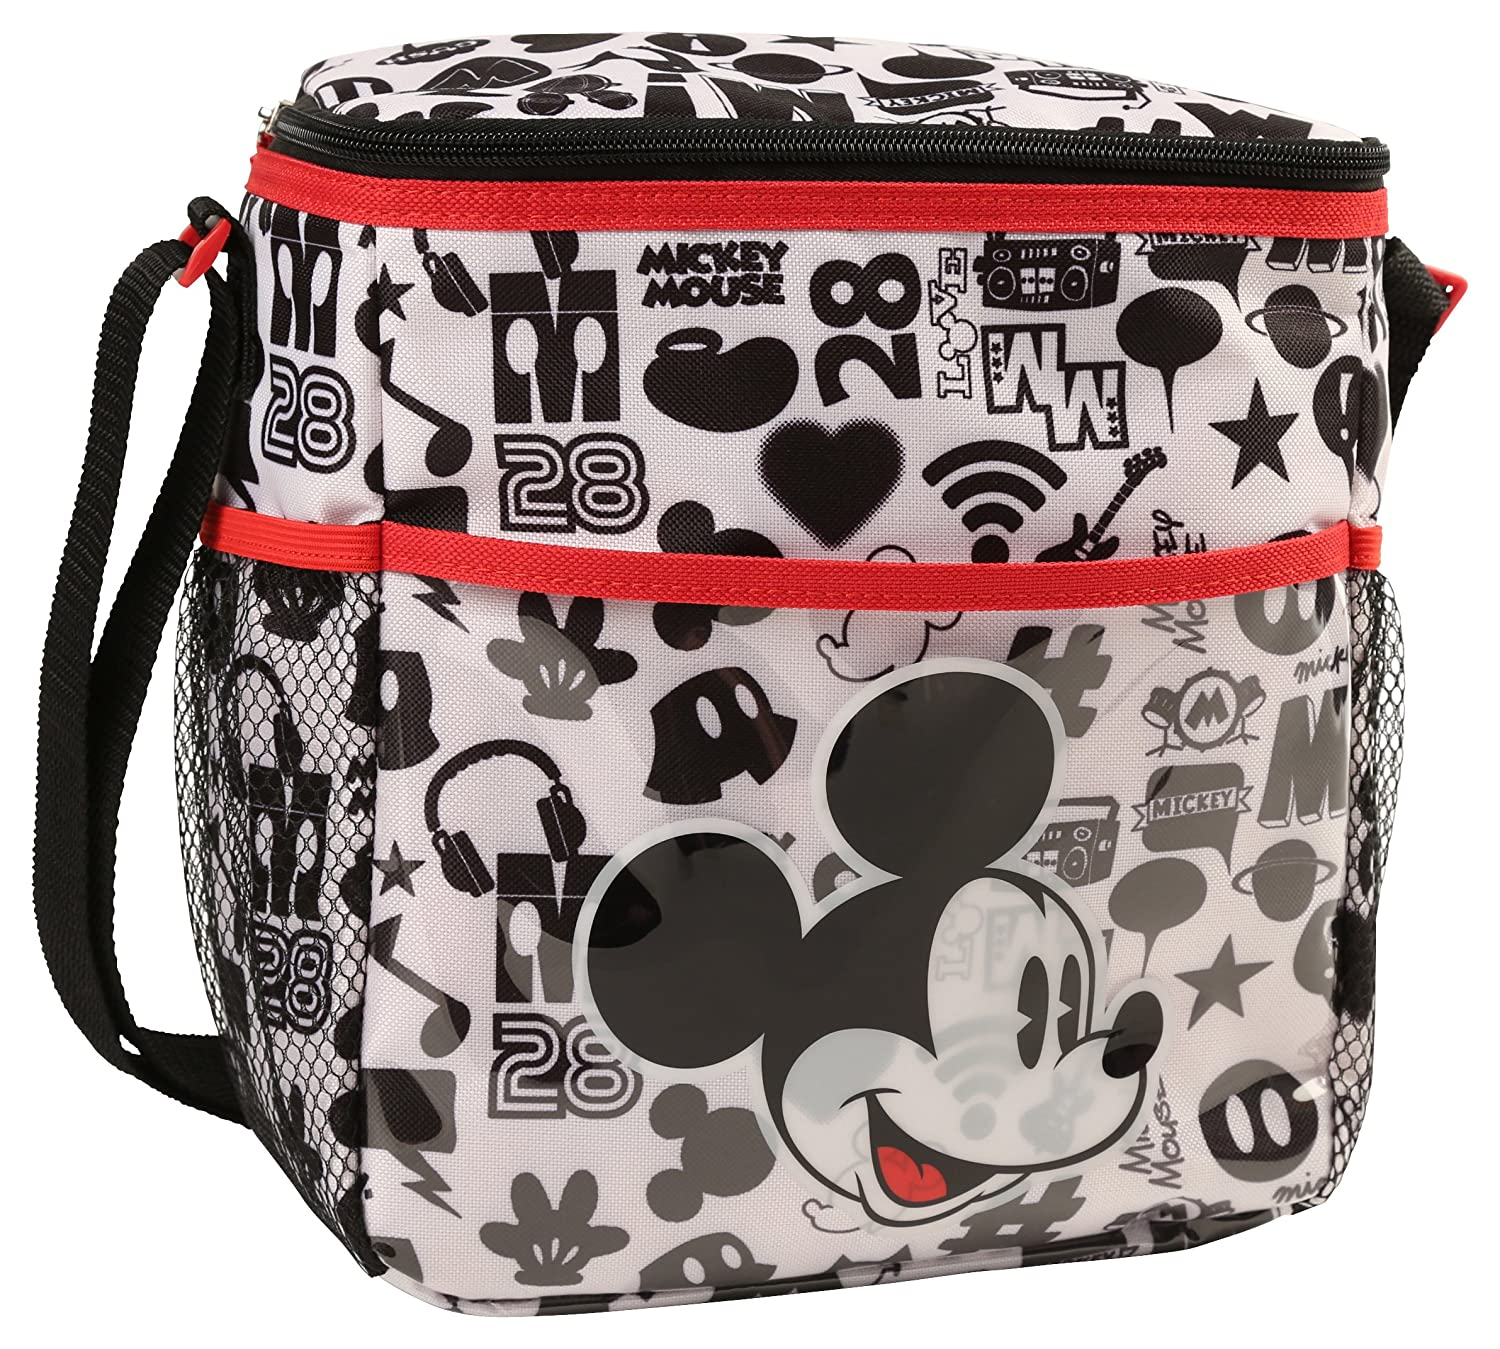 2019 New Diaper Bag Backpack Mini Mouse Mickey Mouse Design Baby Bag Large